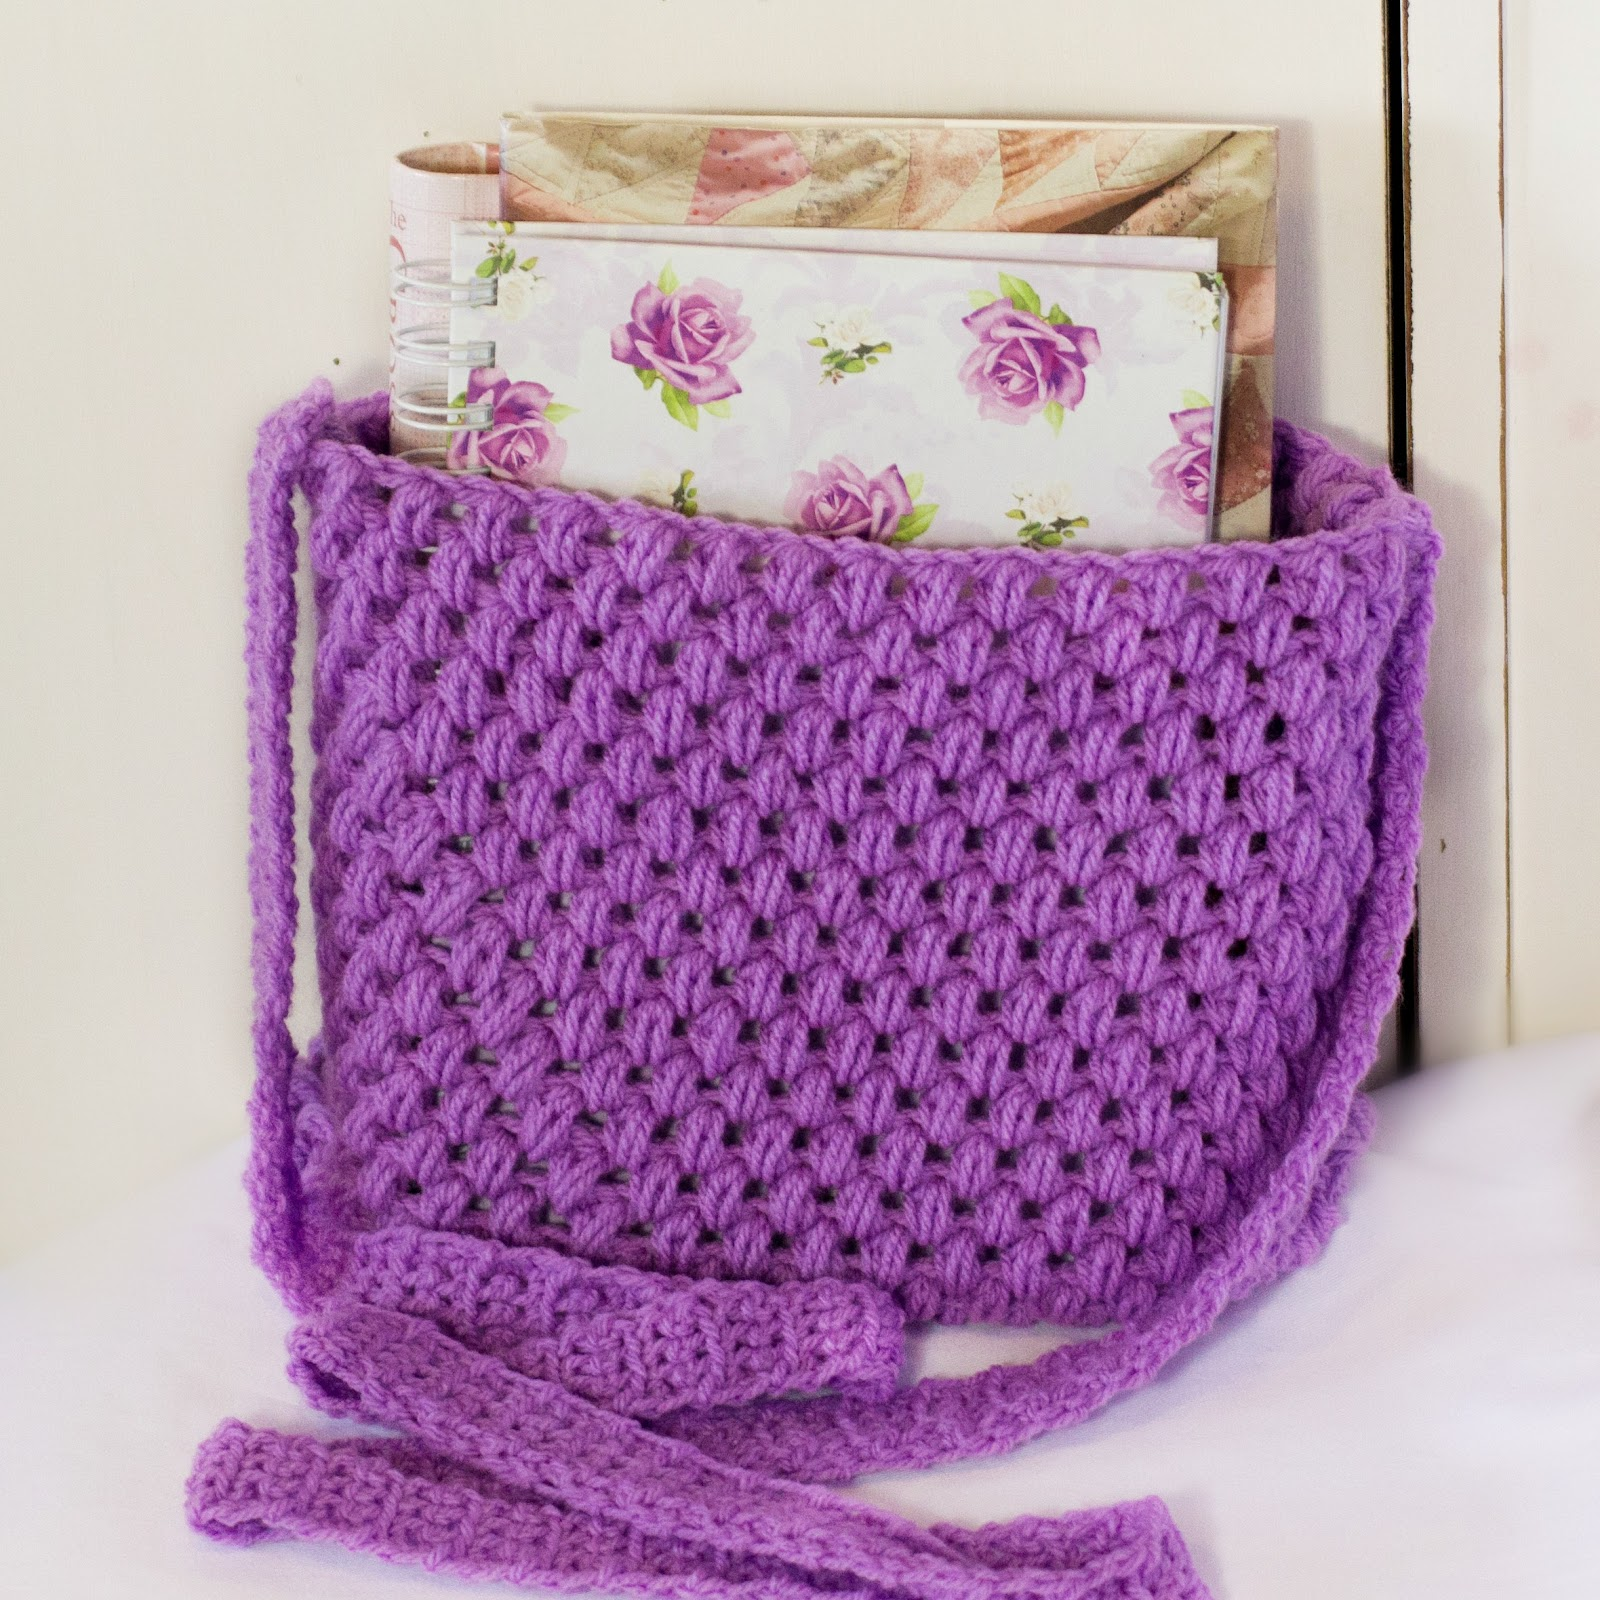 Crochet Bags And Purses Free Patterns : ... Craft, Crochet, Create: Out and About ~ Easy Tote Bag Crochet Pattern